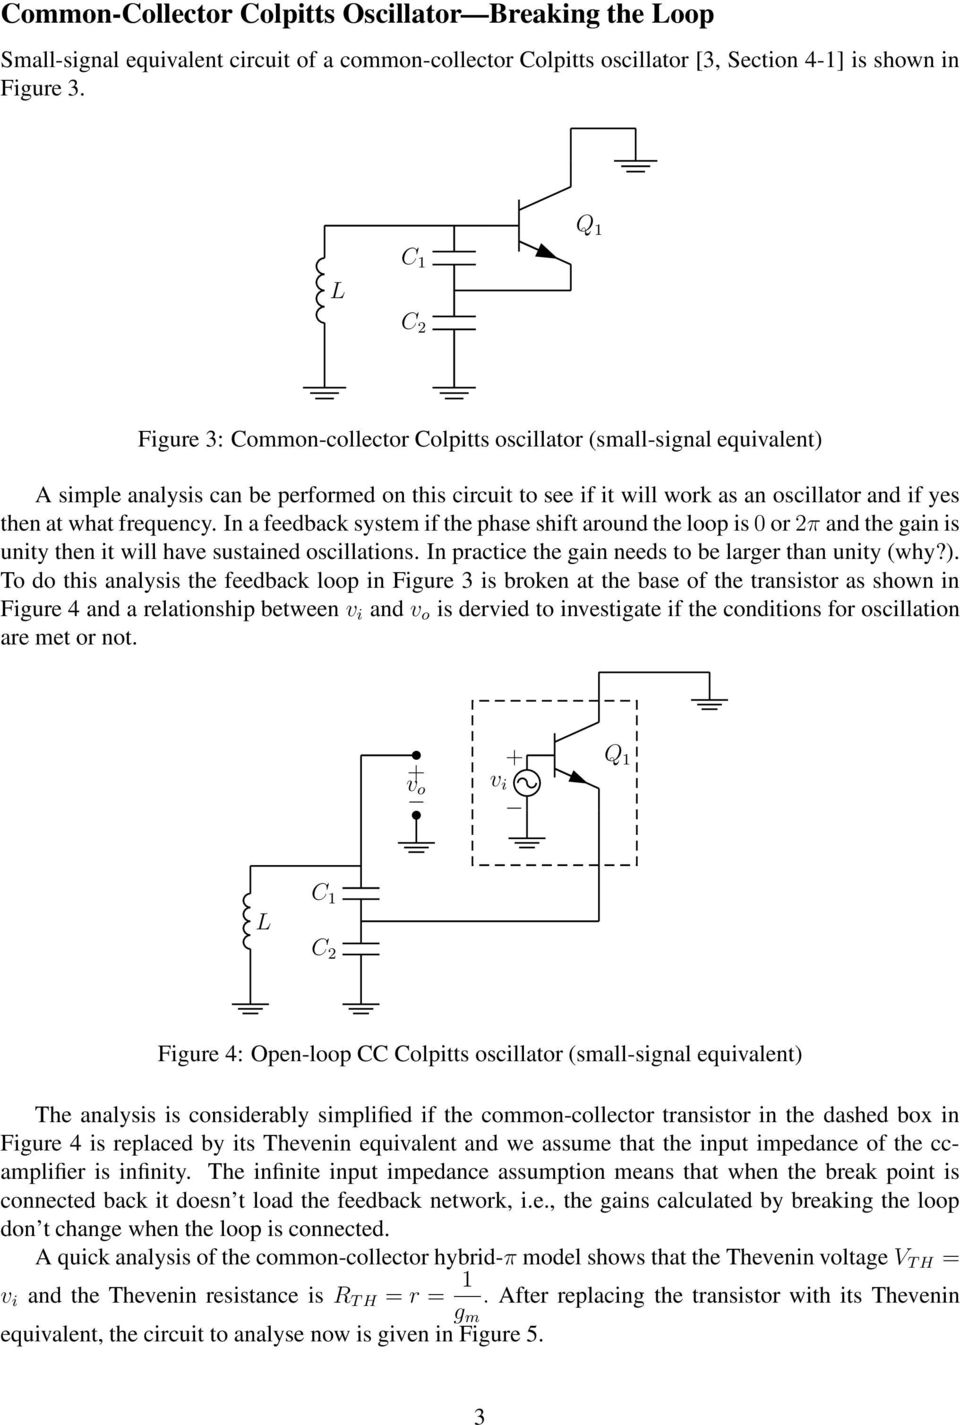 Analysis Of Common Collector Colpitts Oscillator Pdf Transistor Oscillators In A Feedback System If The Phase Shift Around Loop Is 0 Or 2 And